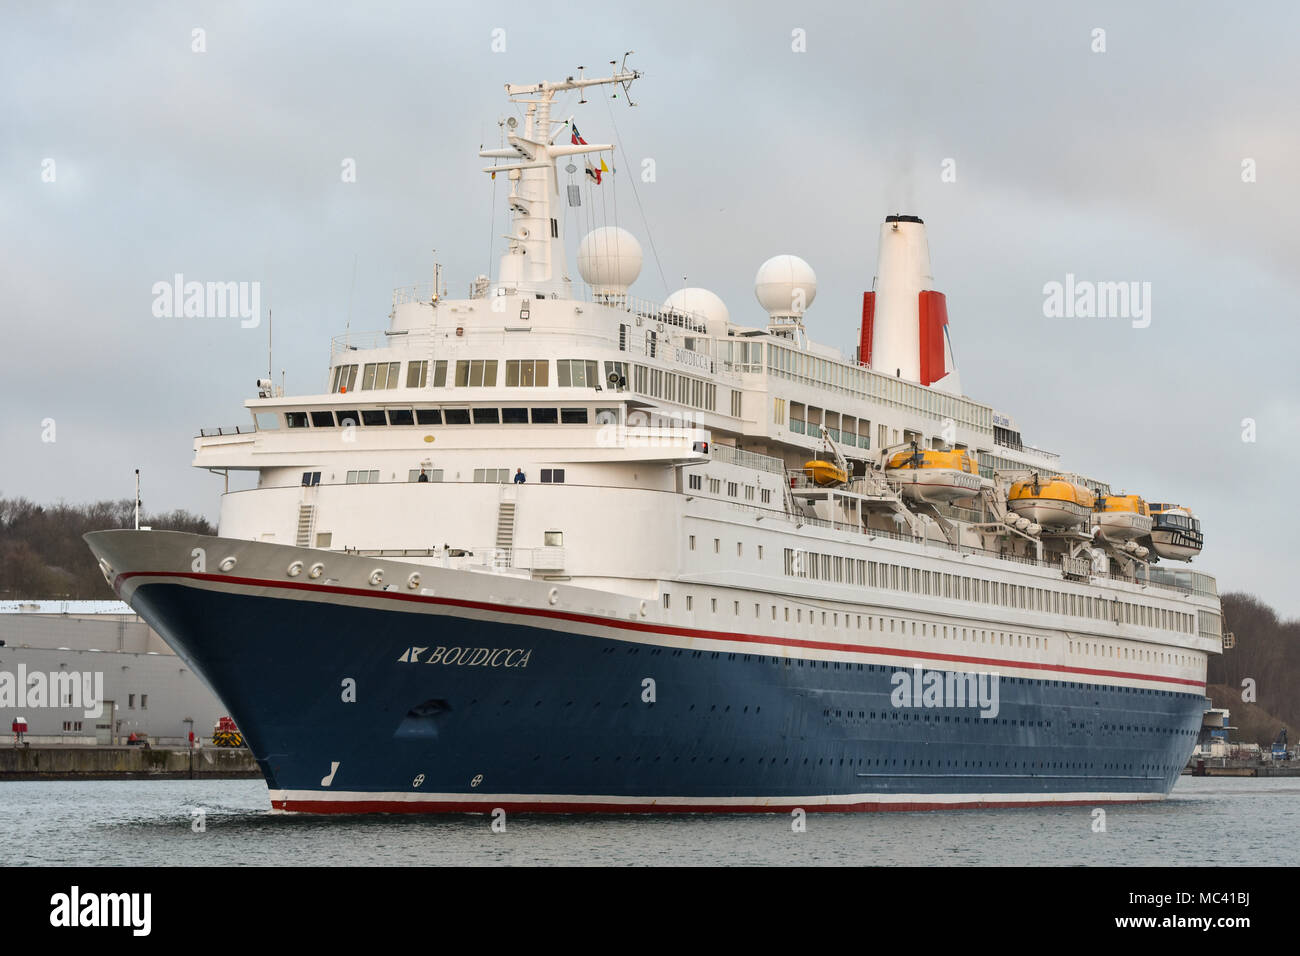 Classic cruiseship Boudicca passing the Kiel Canal bound for Kiel - Stock Image